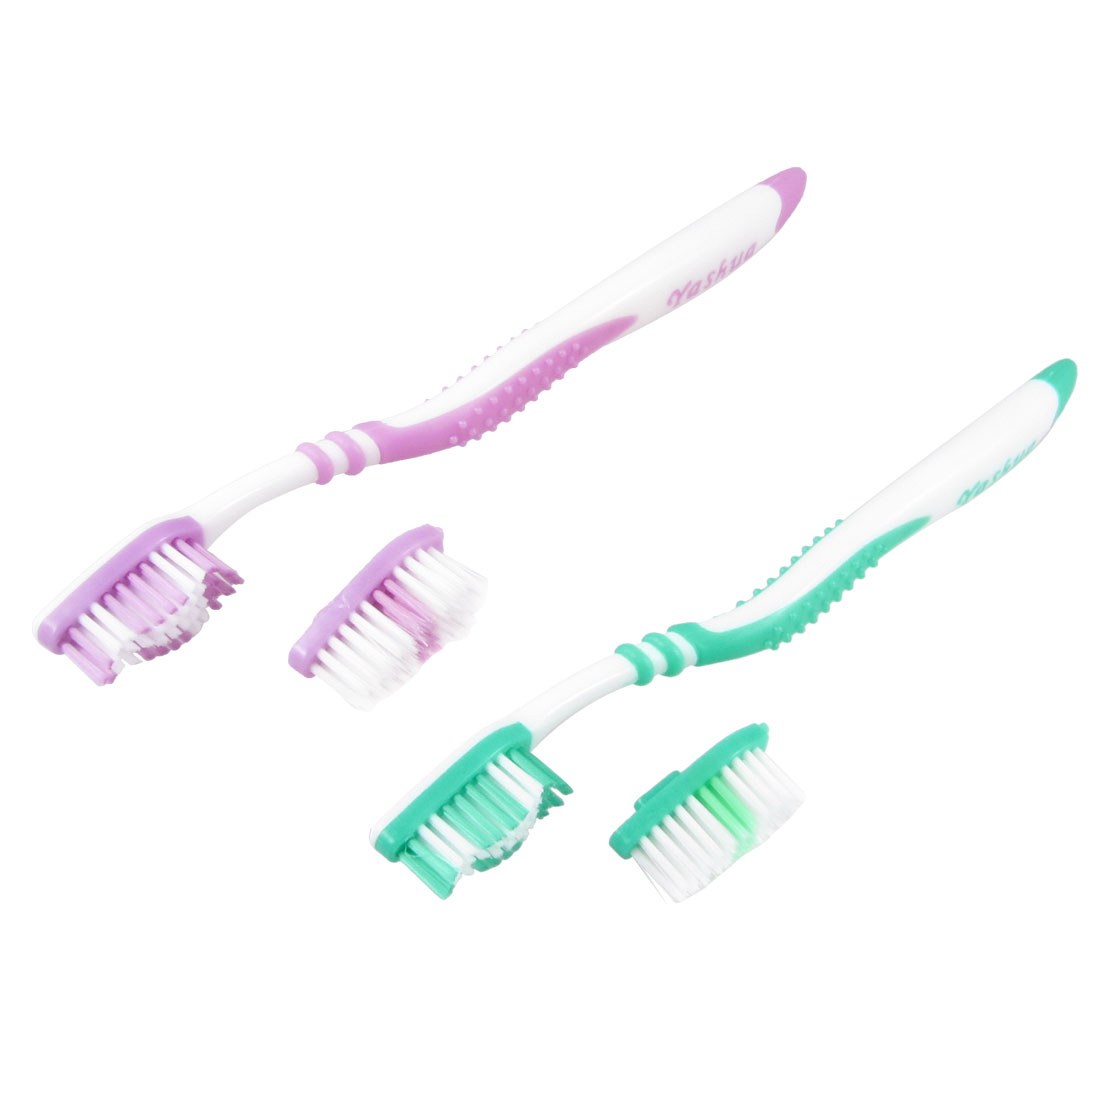 2 Pcs Green Purple Plastic Oral Hygiene Toothbrushes w Replacement Brush Head